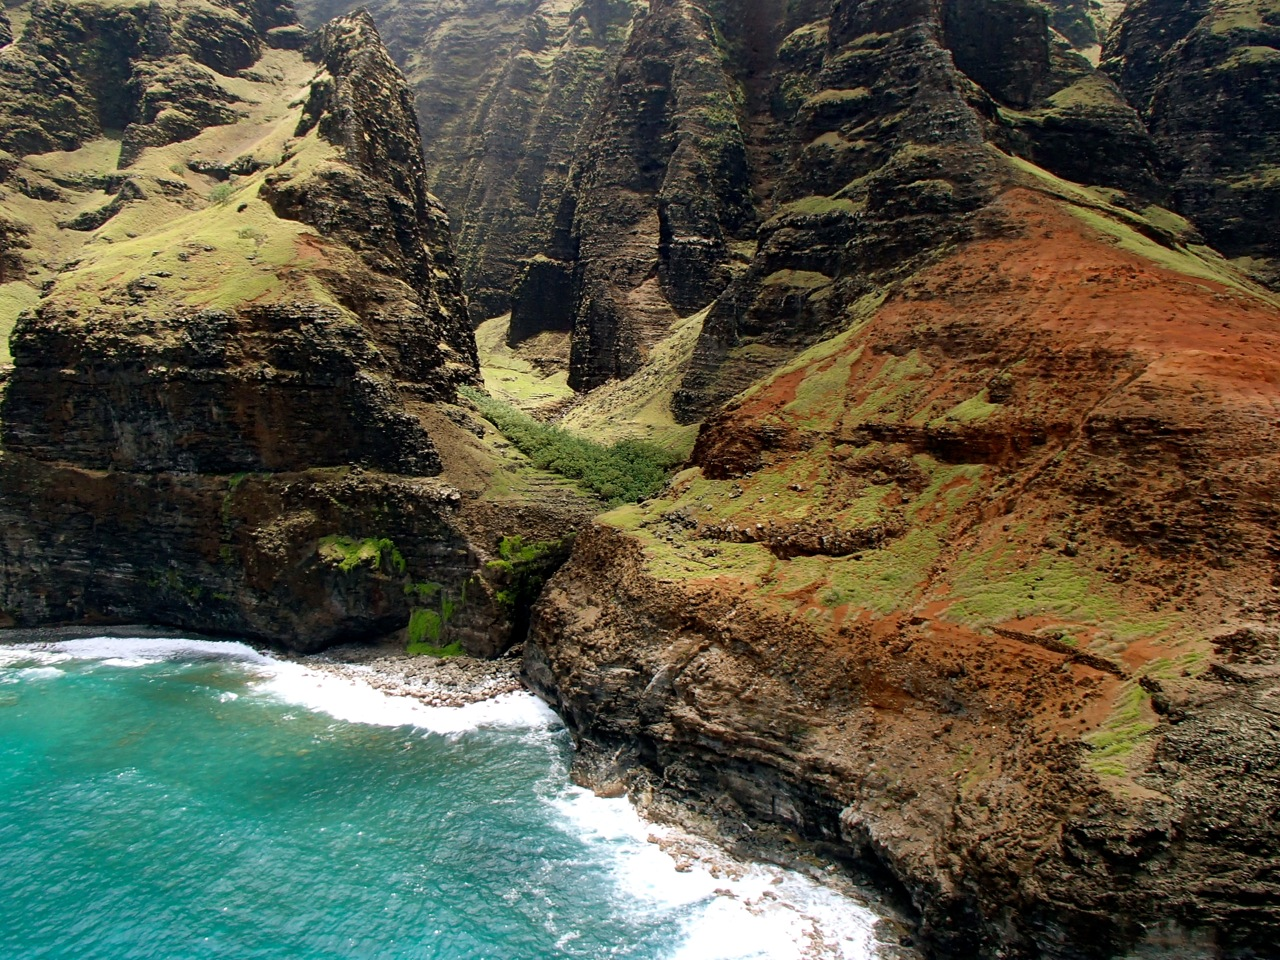 division of state parks | nāpali coast state wilderness park